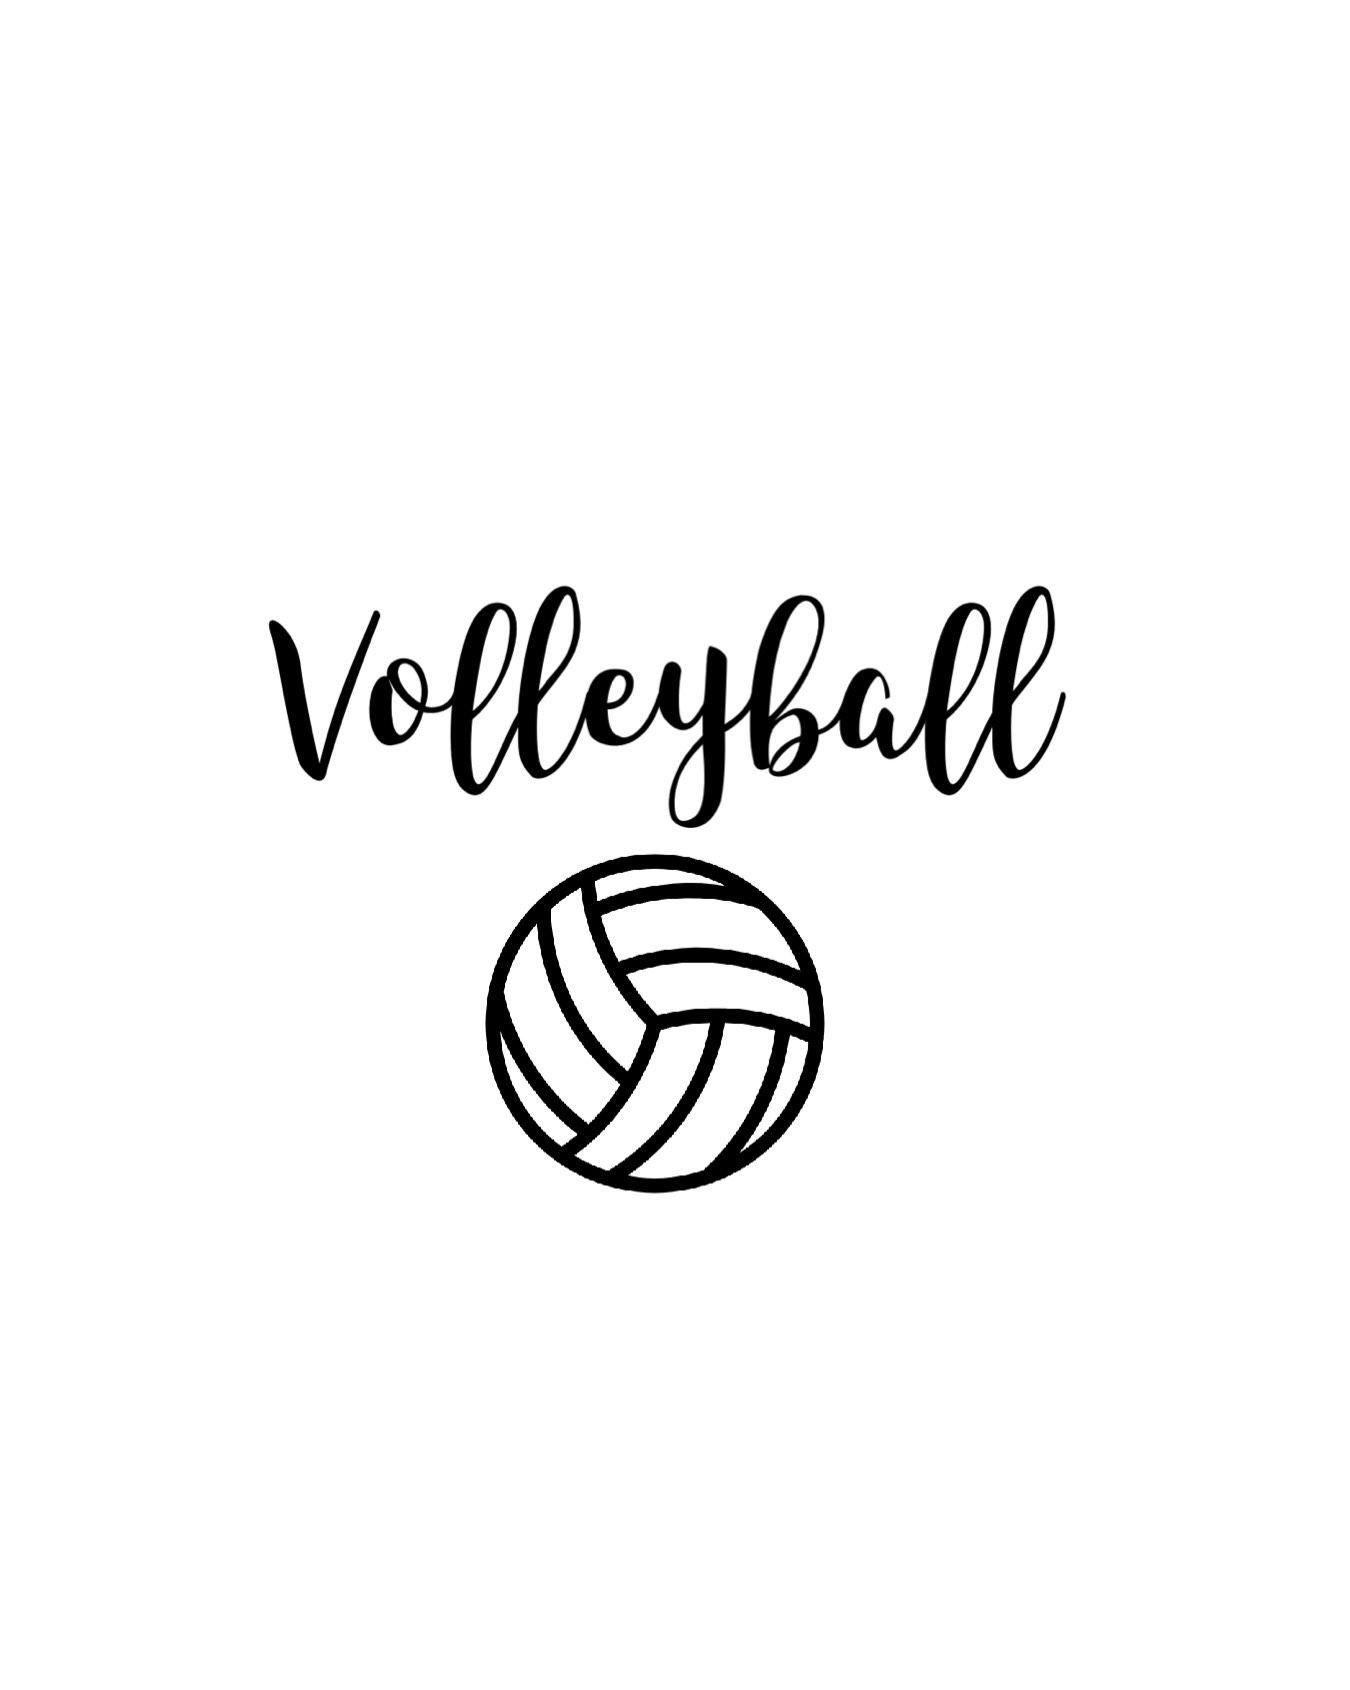 73 Wallpaper Motivation Wallpaper Volleyball Quotes In 2020 Volleyball Wallpaper Volleyball Drawing Volleyball Players